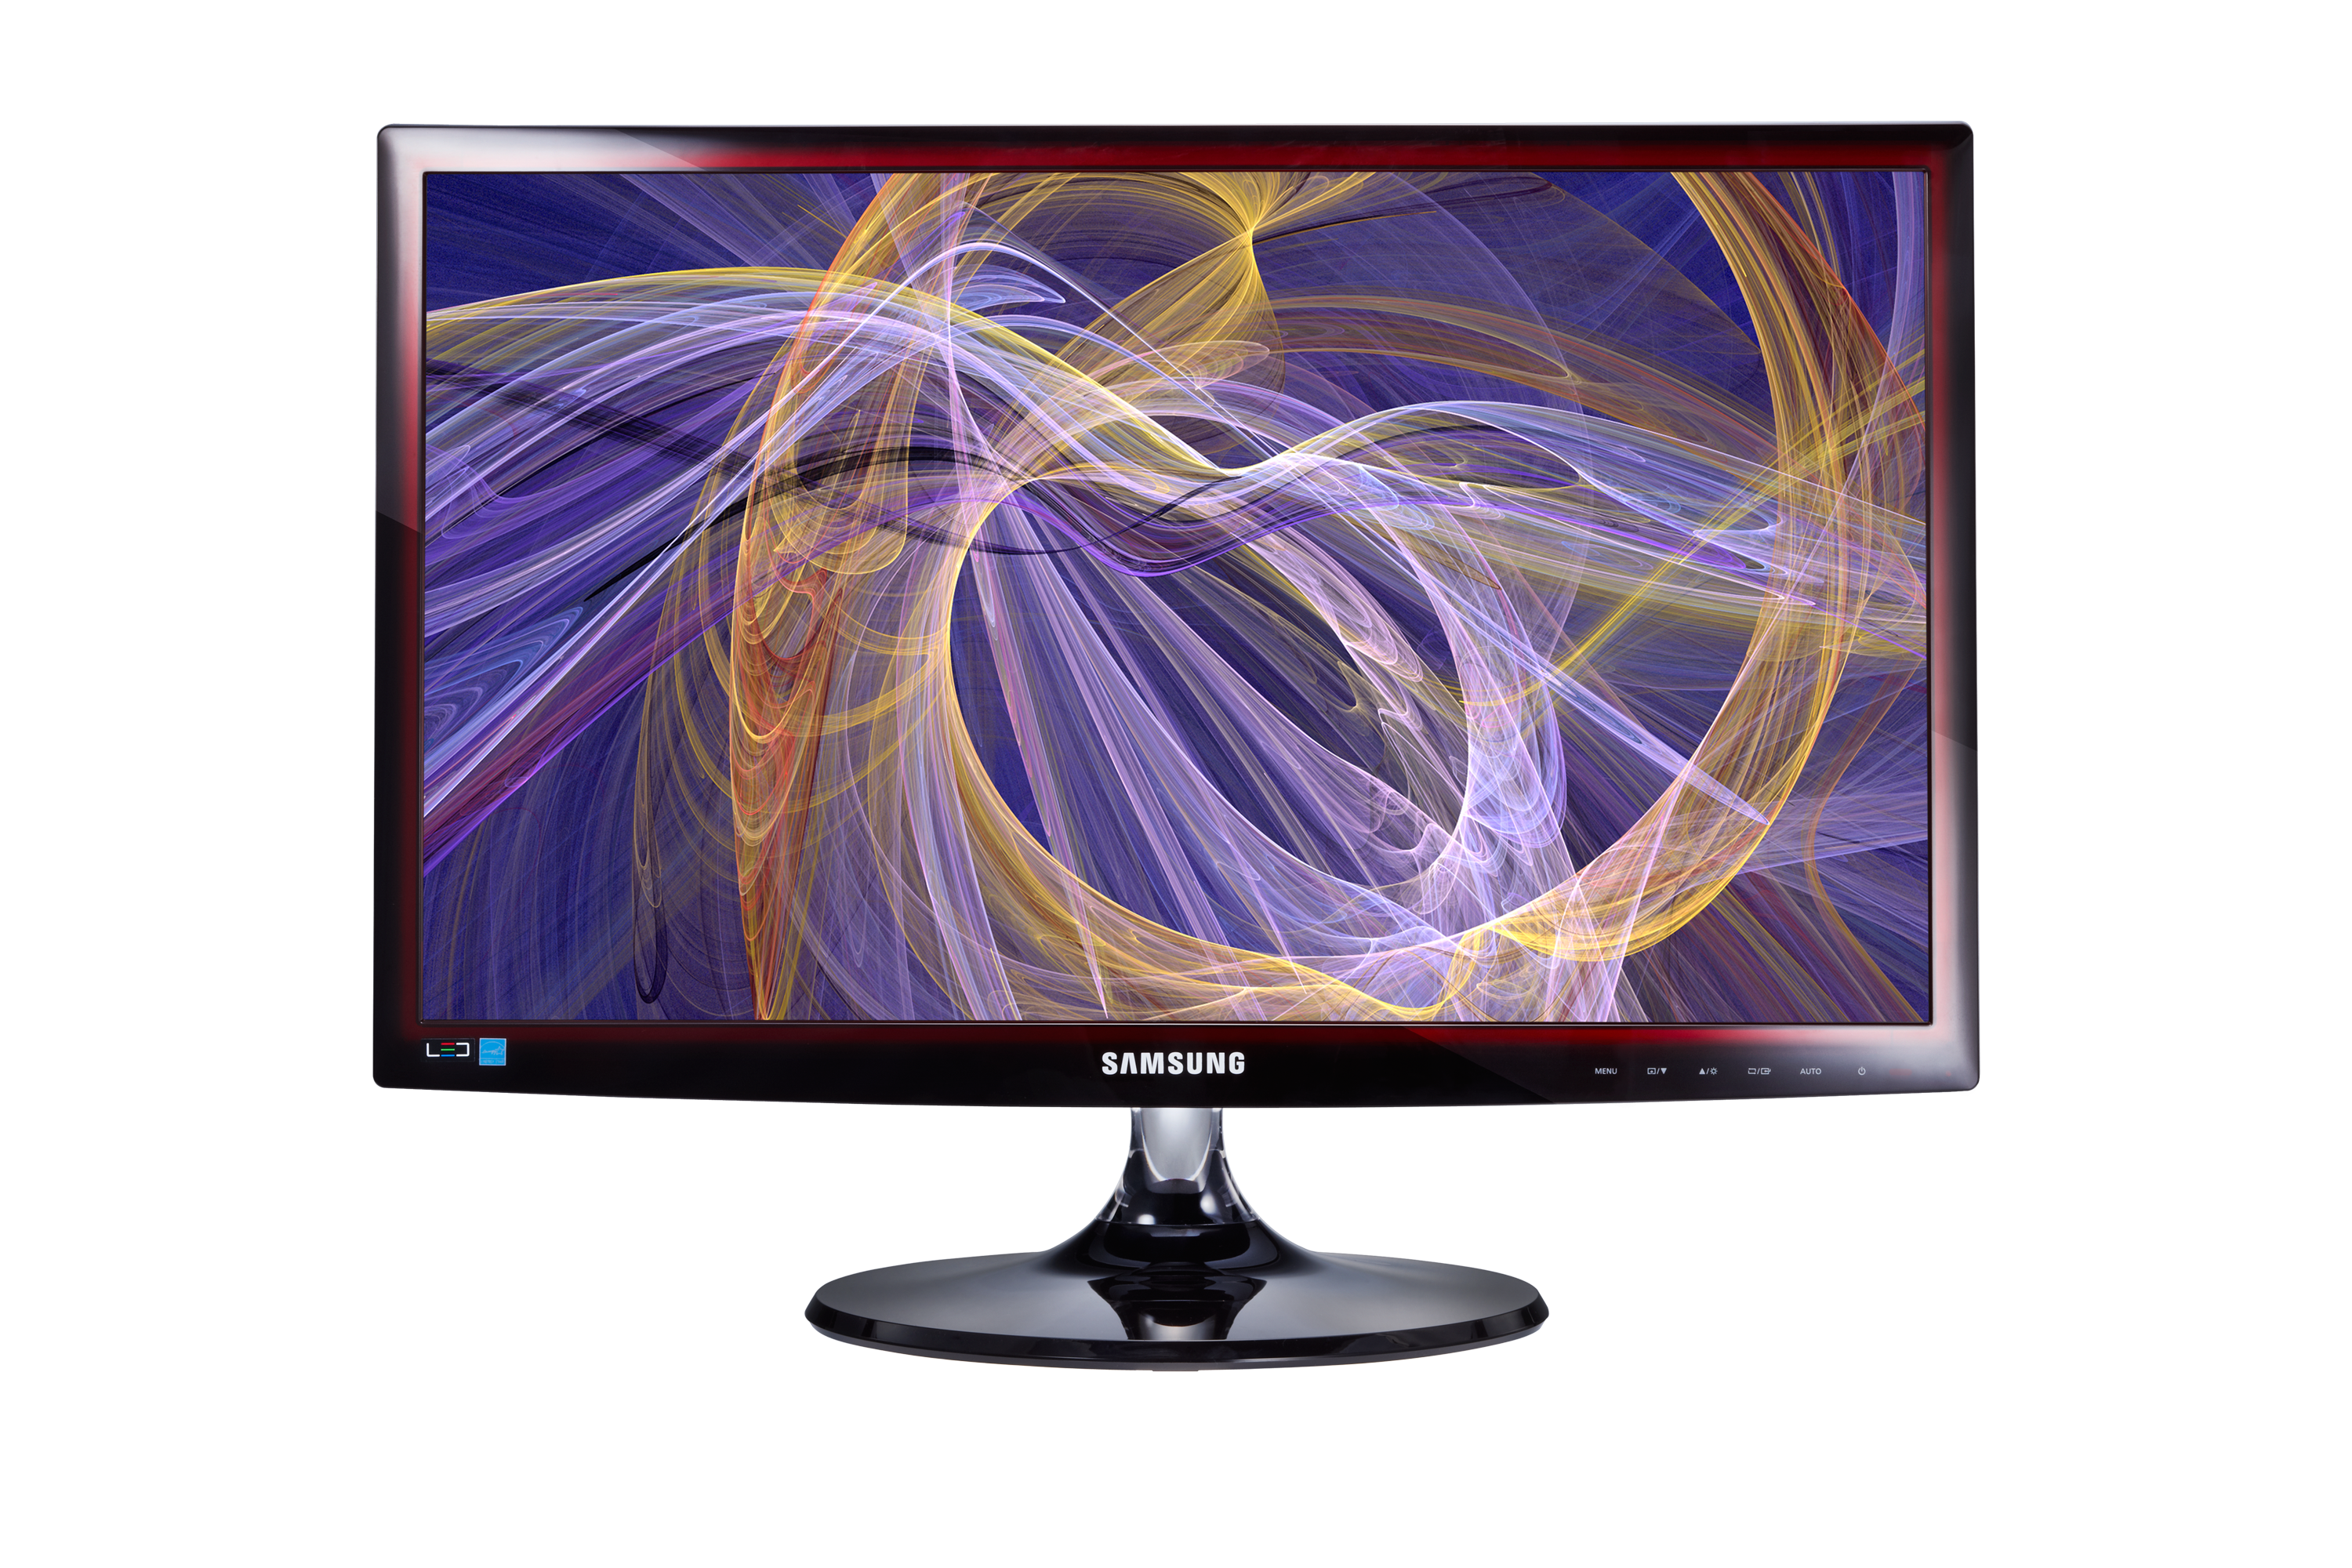 24 S24B350H Series 3 LED Monitor